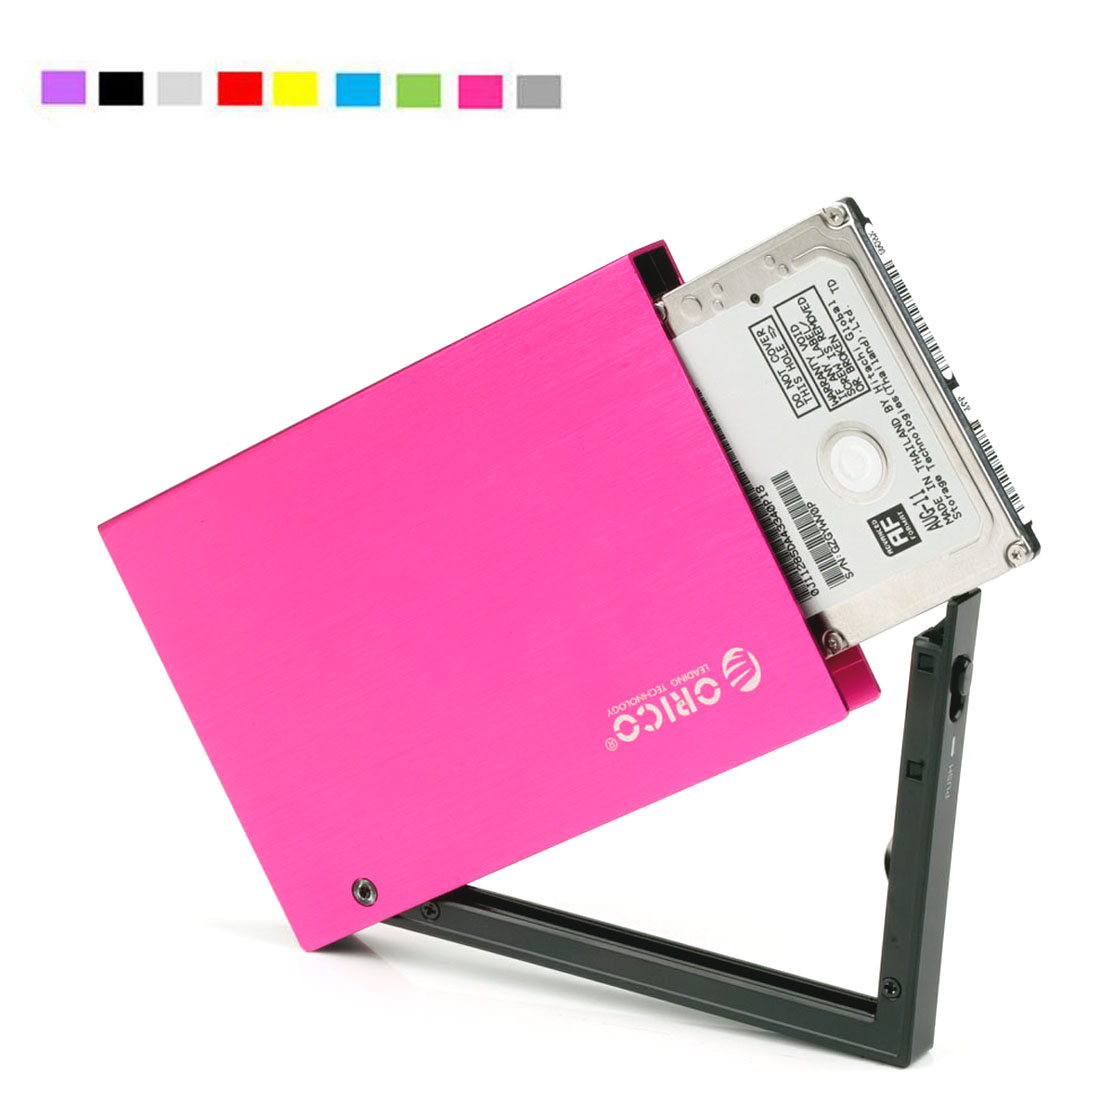 ORICO 25A2 Ultra Slim 2.5-Inch SATA to USB 2.0 External Aluminum HDD/SDD Enclossure